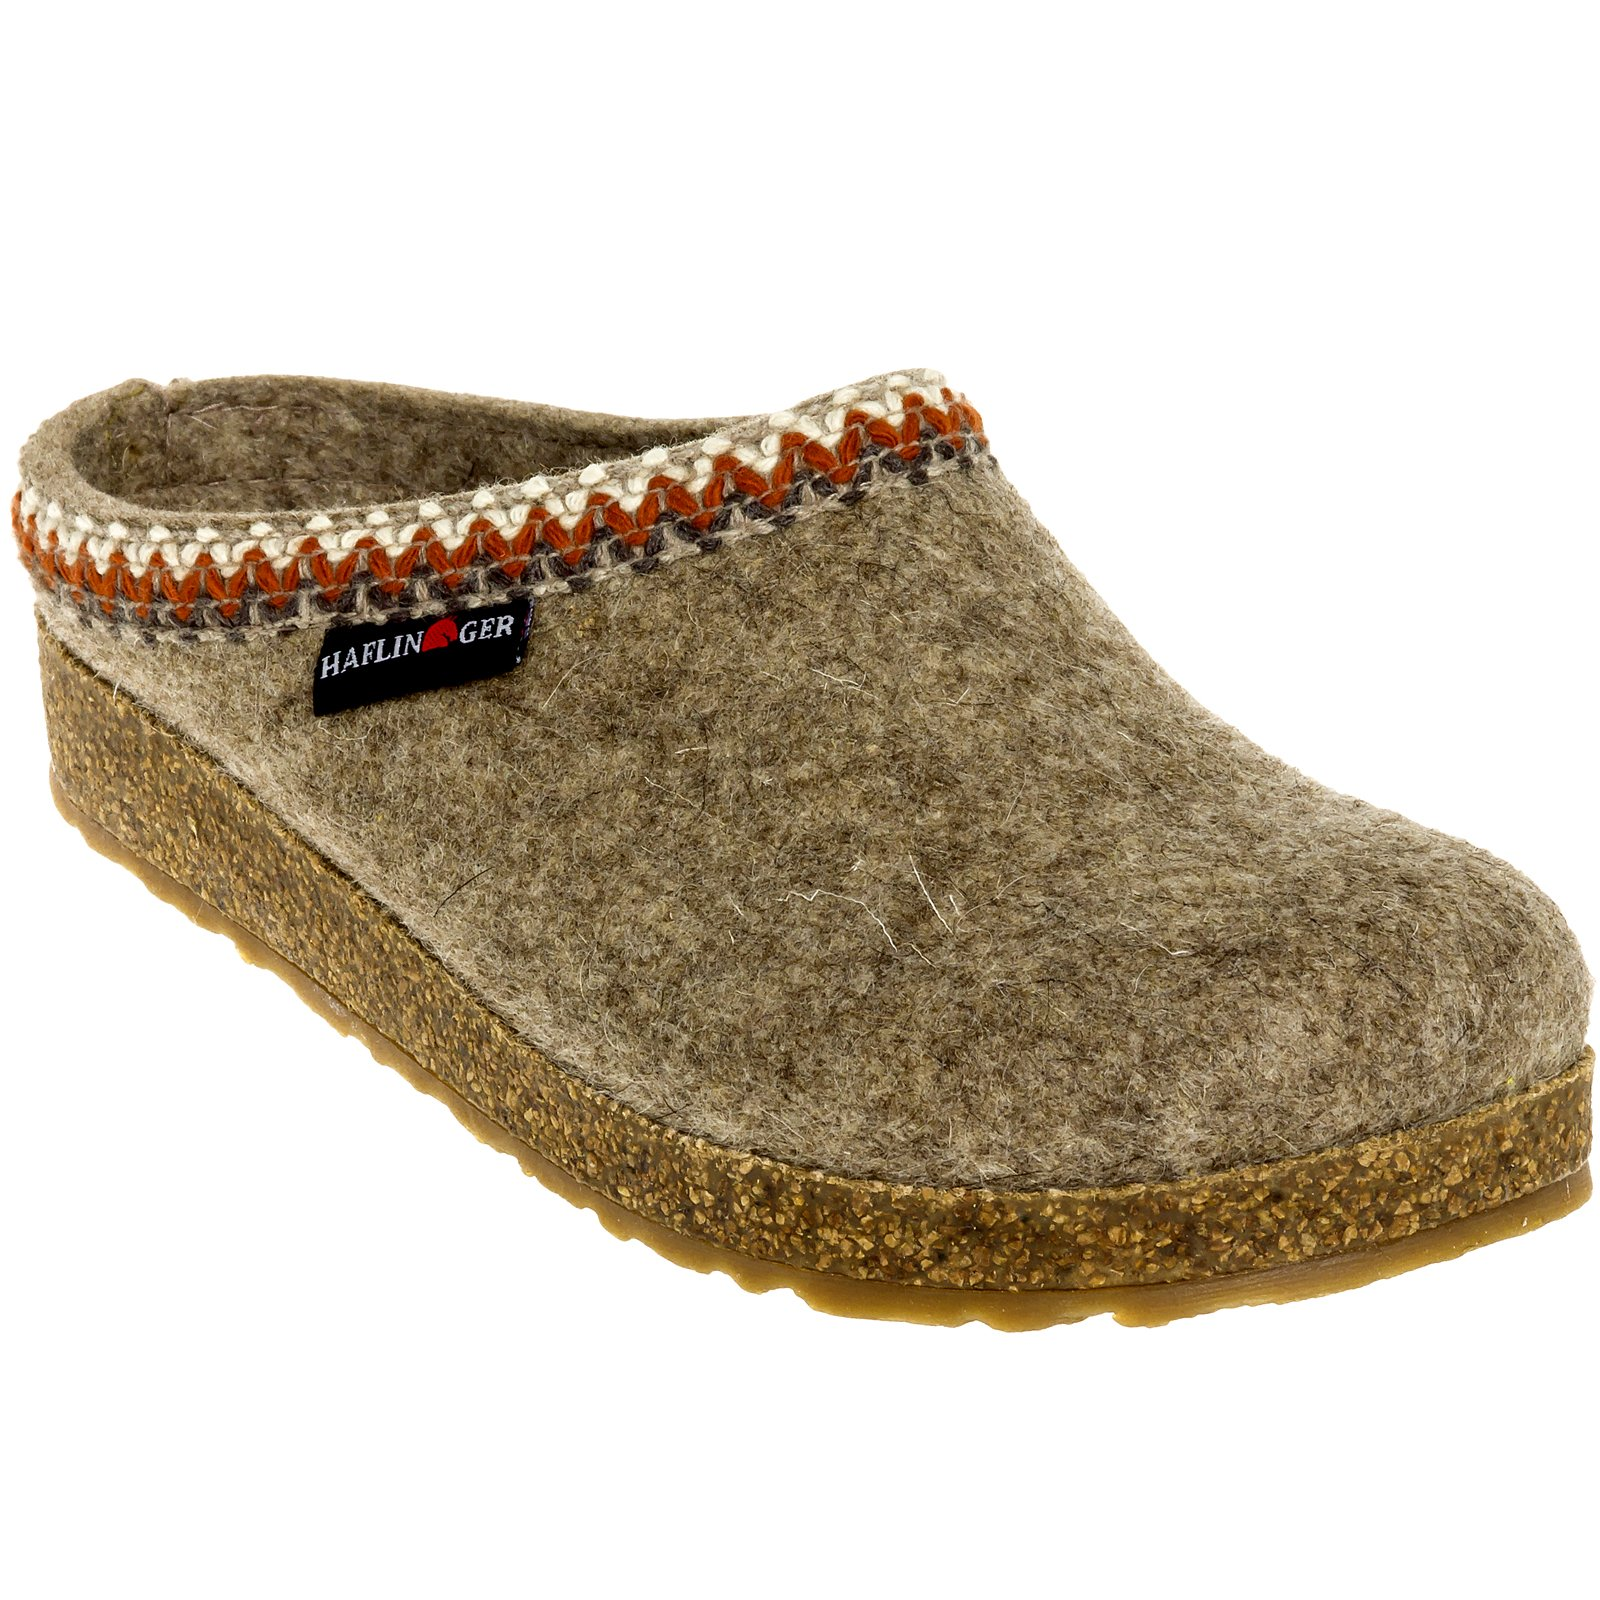 HAFLINGER Women's Gz Zig Zag Grizzly Clog - Earth - 37